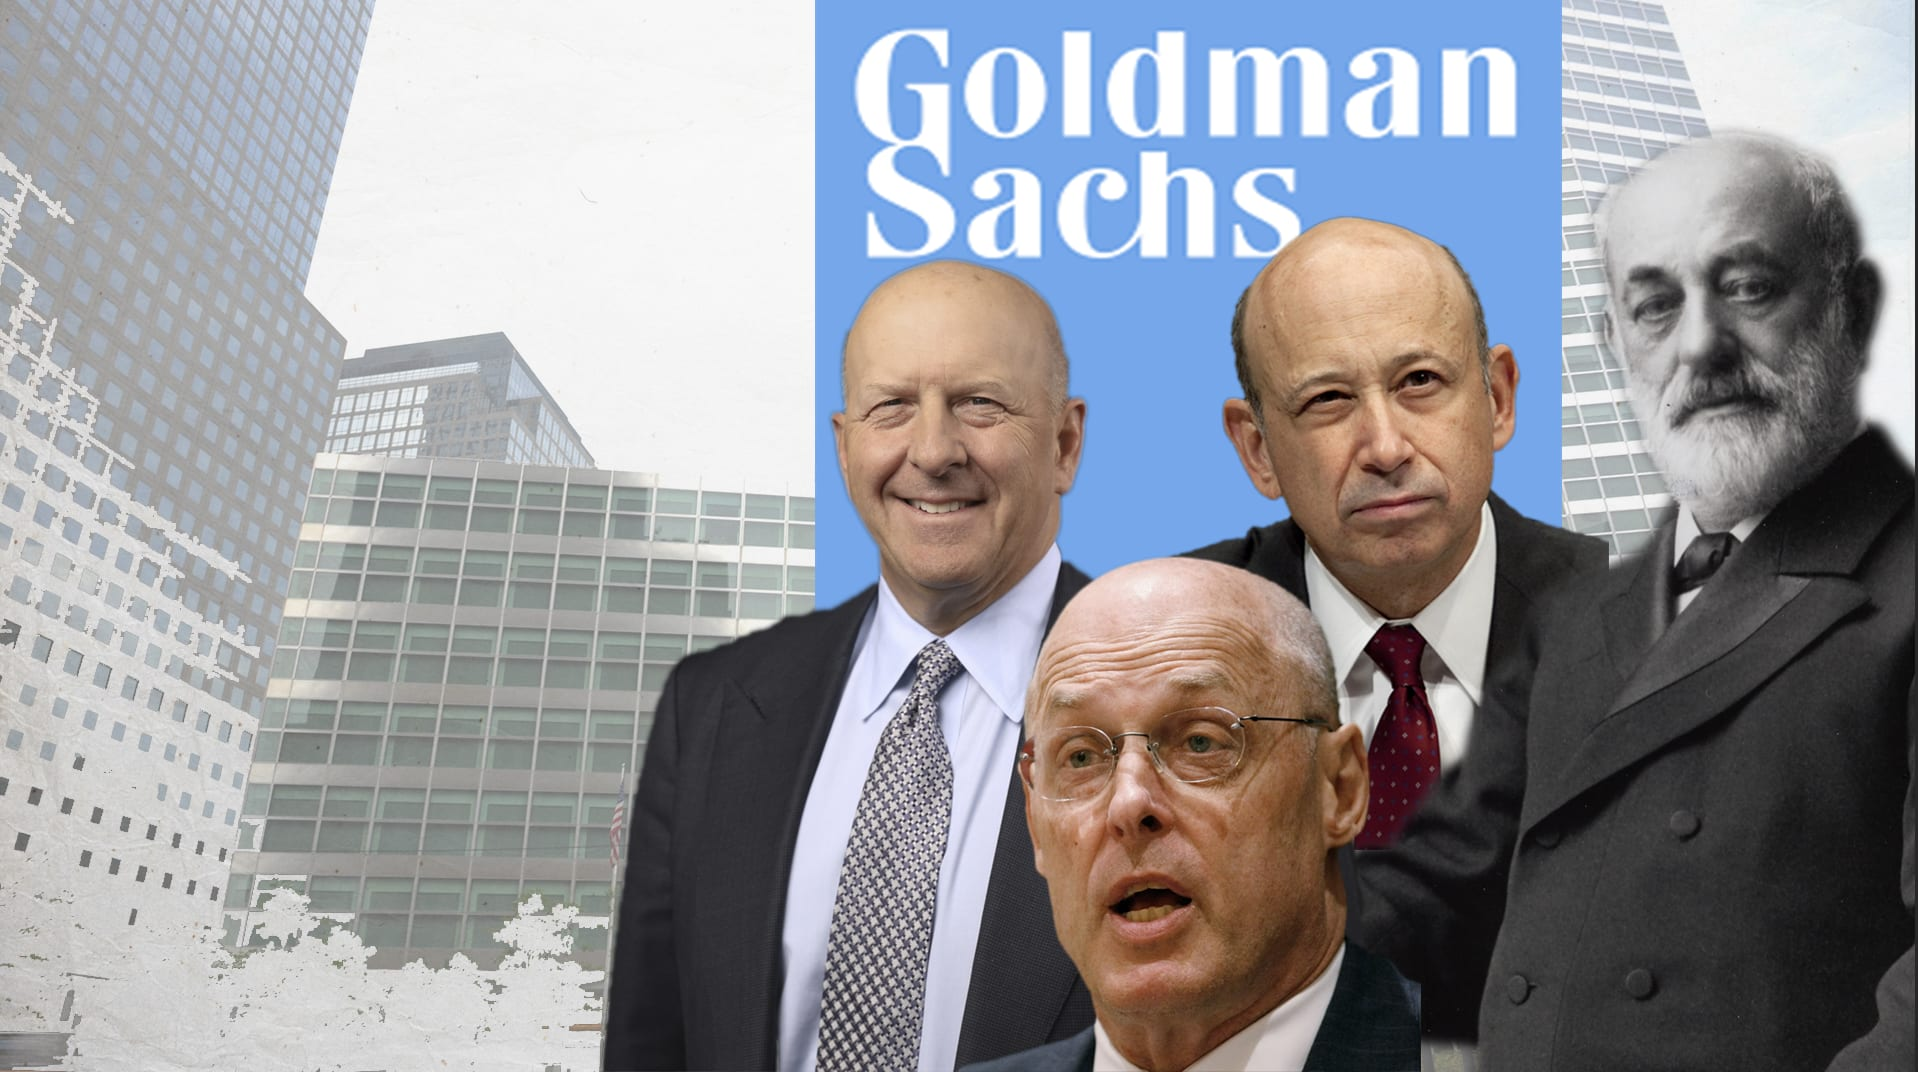 Goldman Sachs Witnesses 1 Percent Drop in Global GDP Due to Corona